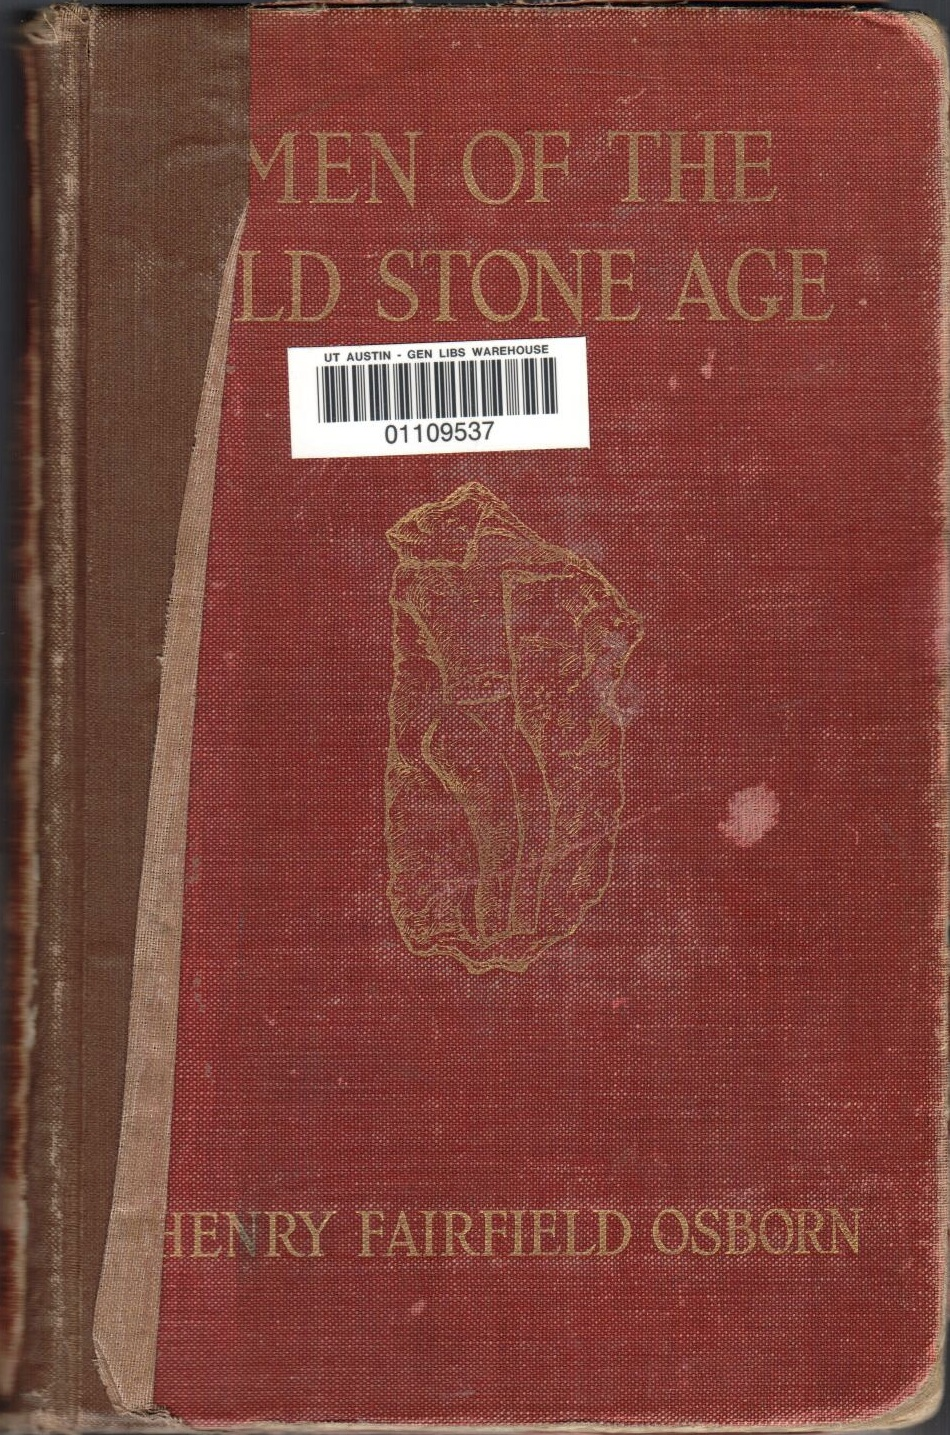 Front cover of  Men of the Old Stone Age  by Henry Fairfield Osborn, 1915 printing.